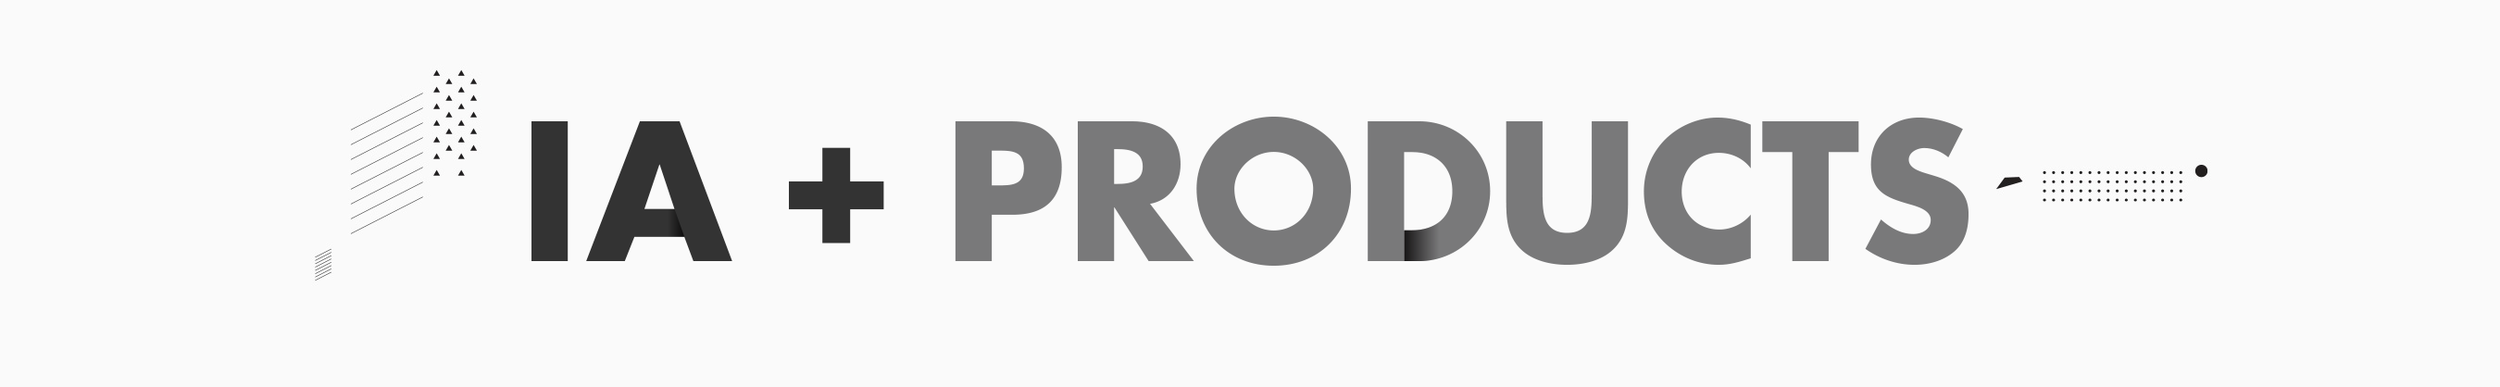 iaProducts_Banner.png